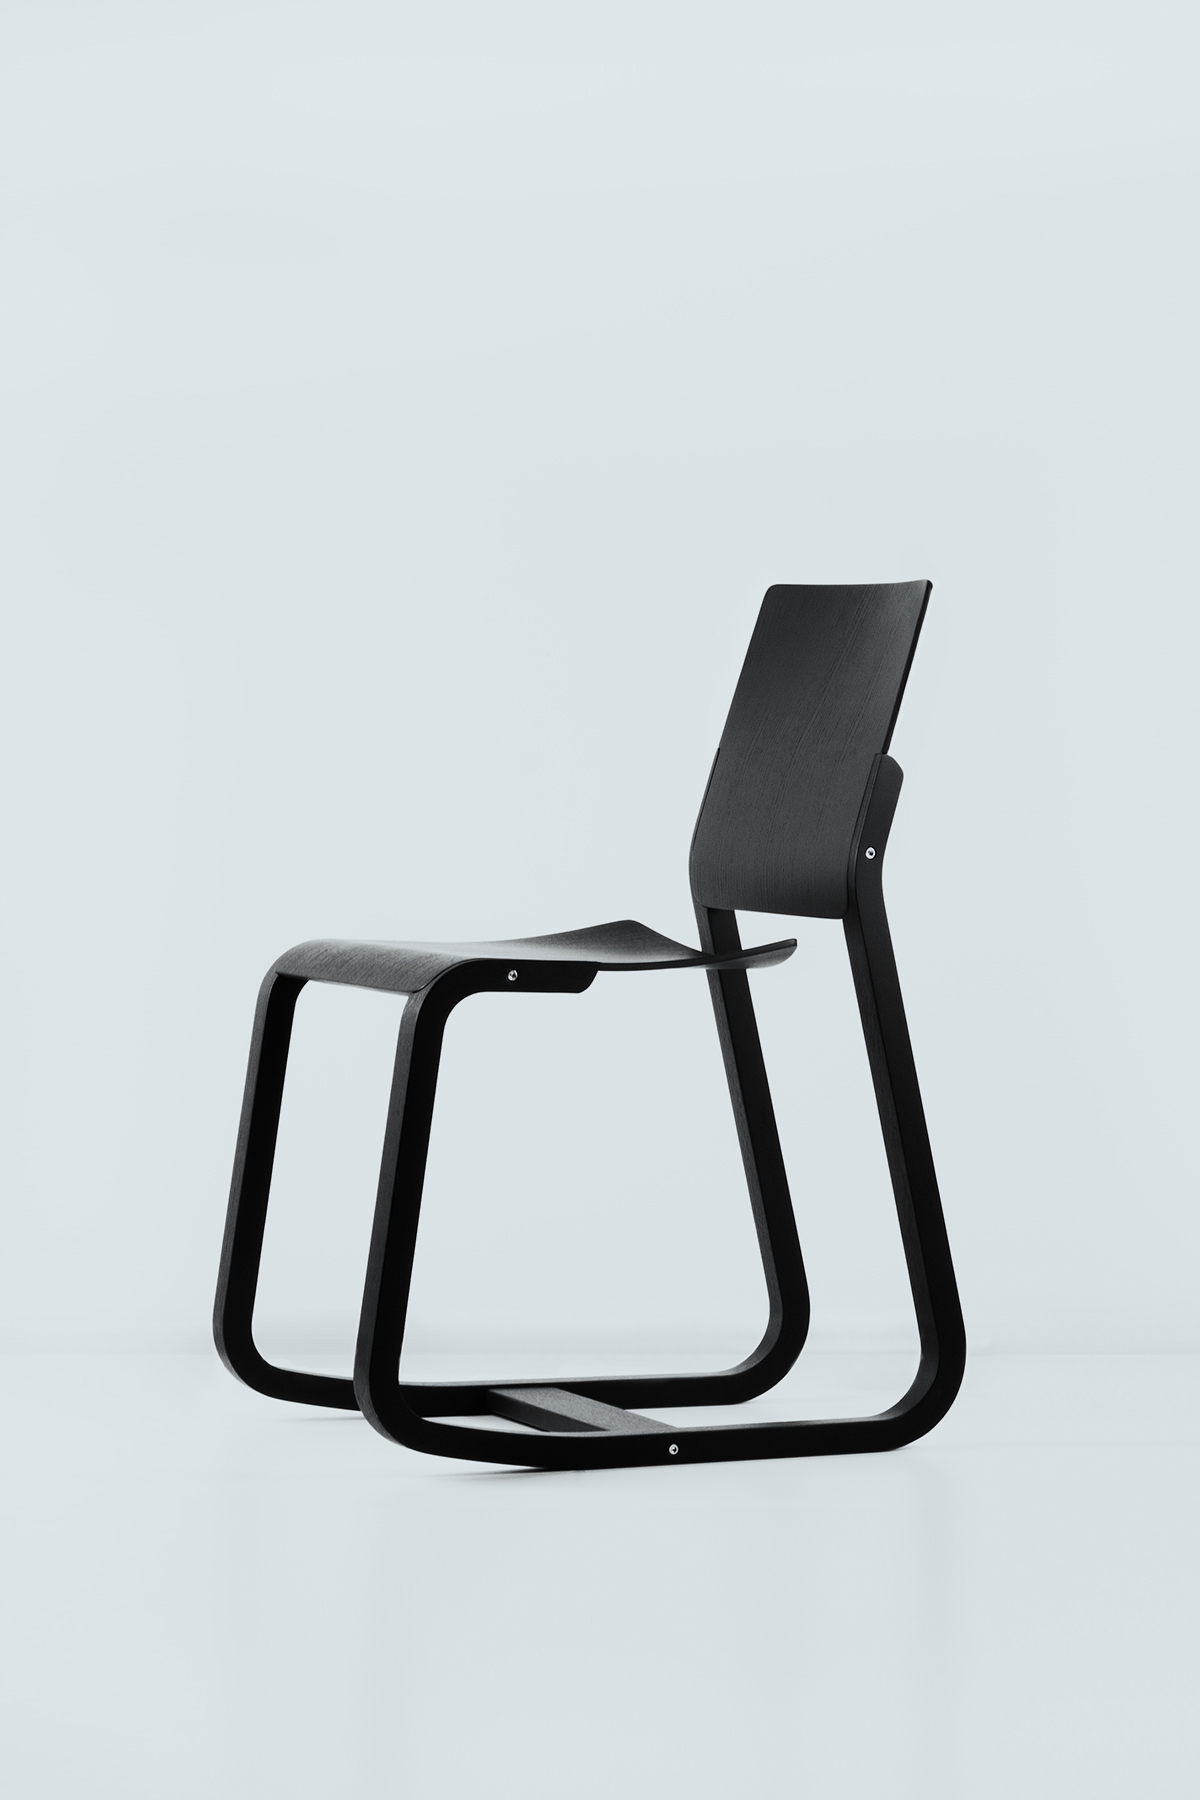 Loid Chair by Geckeler Michels